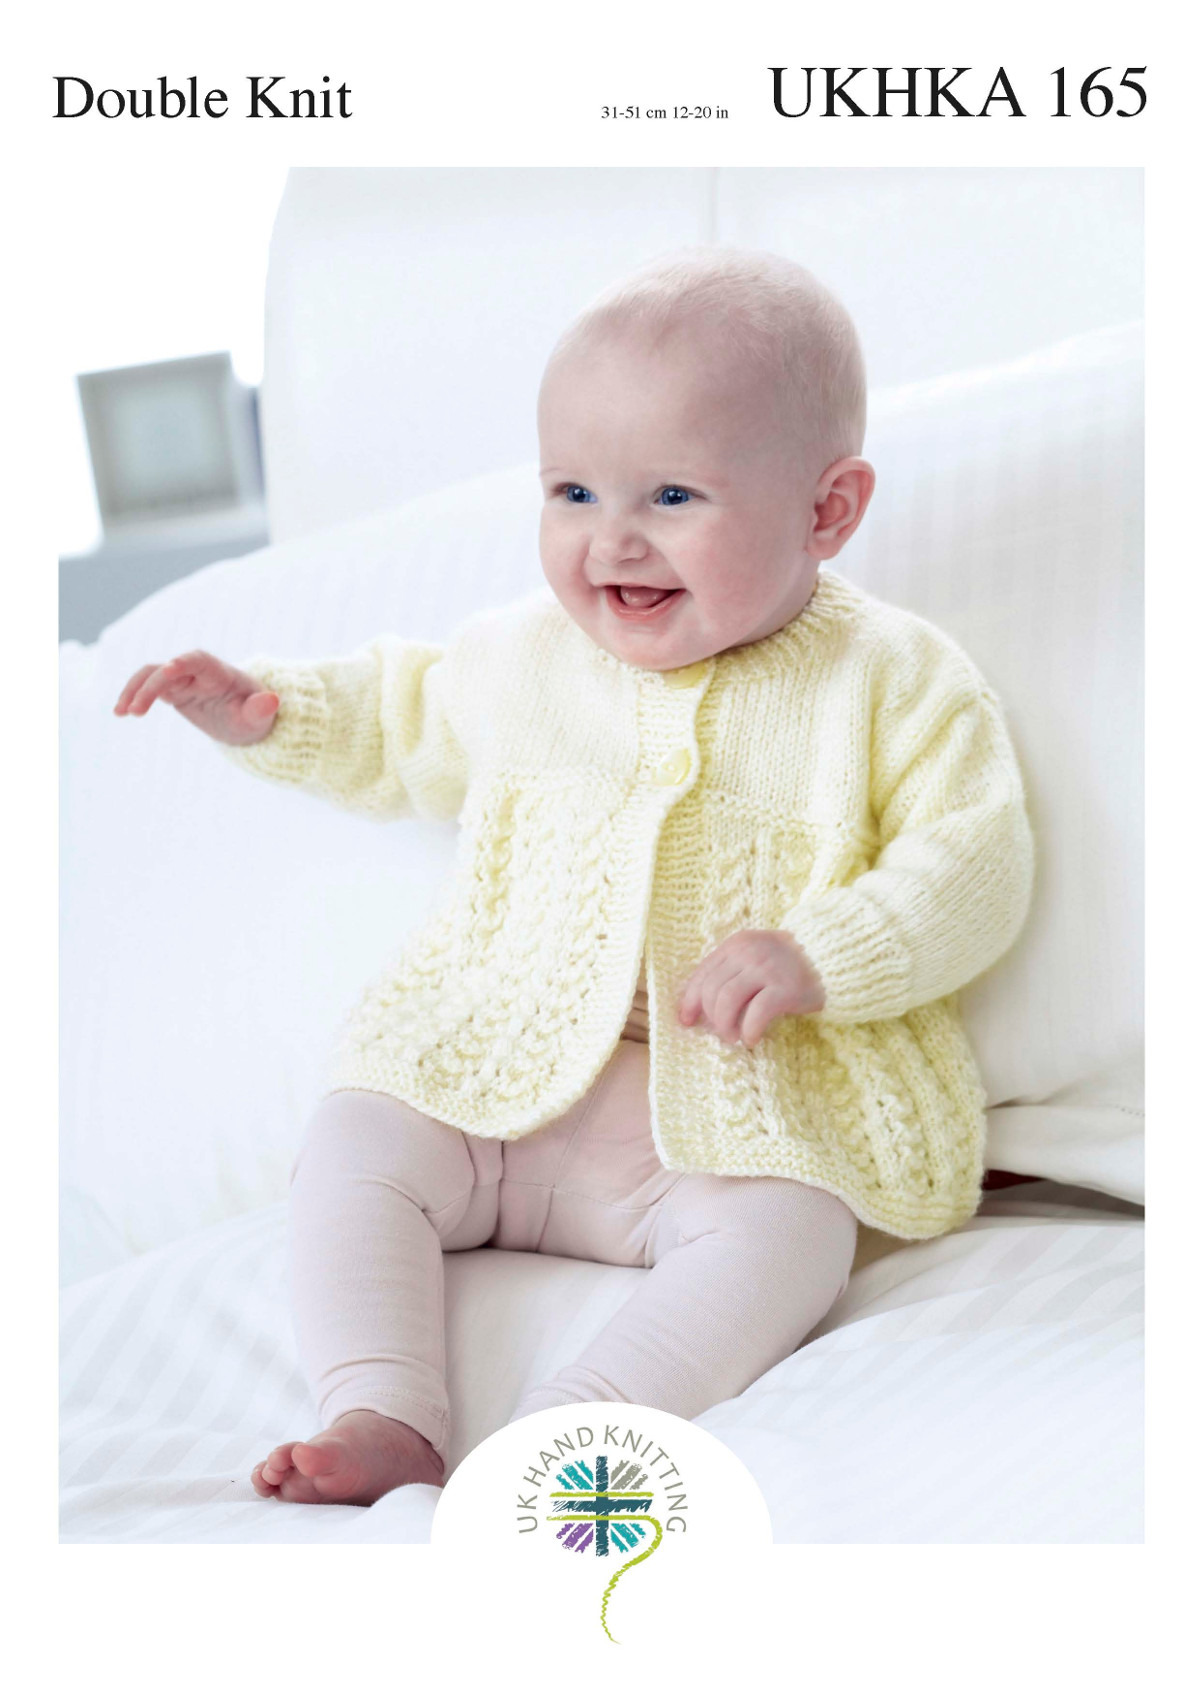 Ukhka 165 baby double knitting pattern lacy round v neck cardigans please look at images below for the chart showing measurements yarn and materials requirement to make this garment this is a ukhka baby knitting pattern bankloansurffo Choice Image